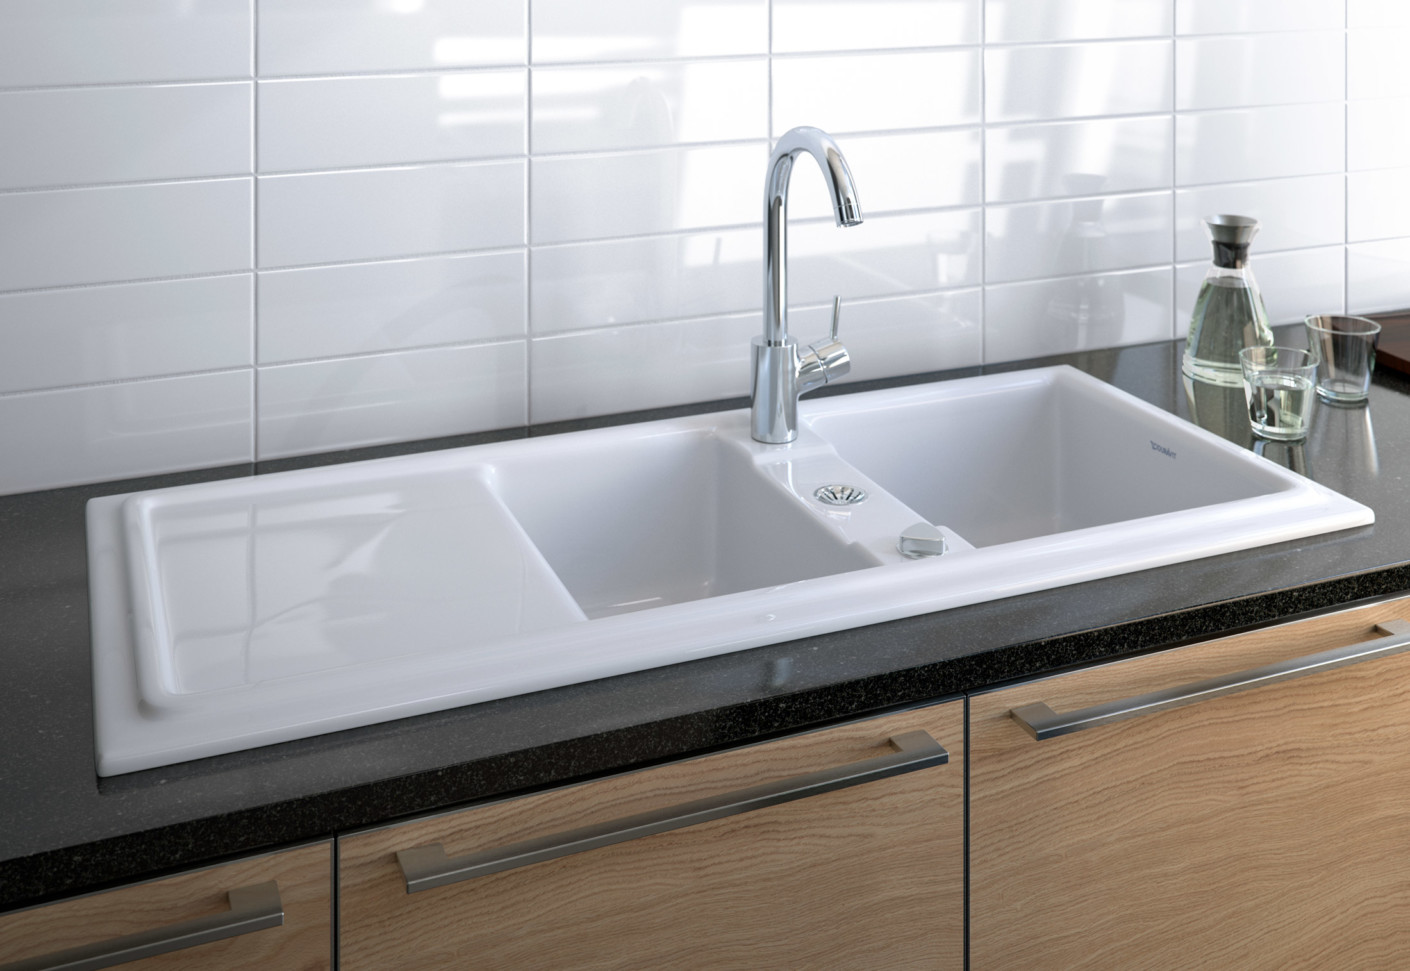 Kitchen Sink Suppliers : Good 24 Inch Kitchen Sinks #4: 24 Inch Kitchen Sink Terraneg HomeJH ...